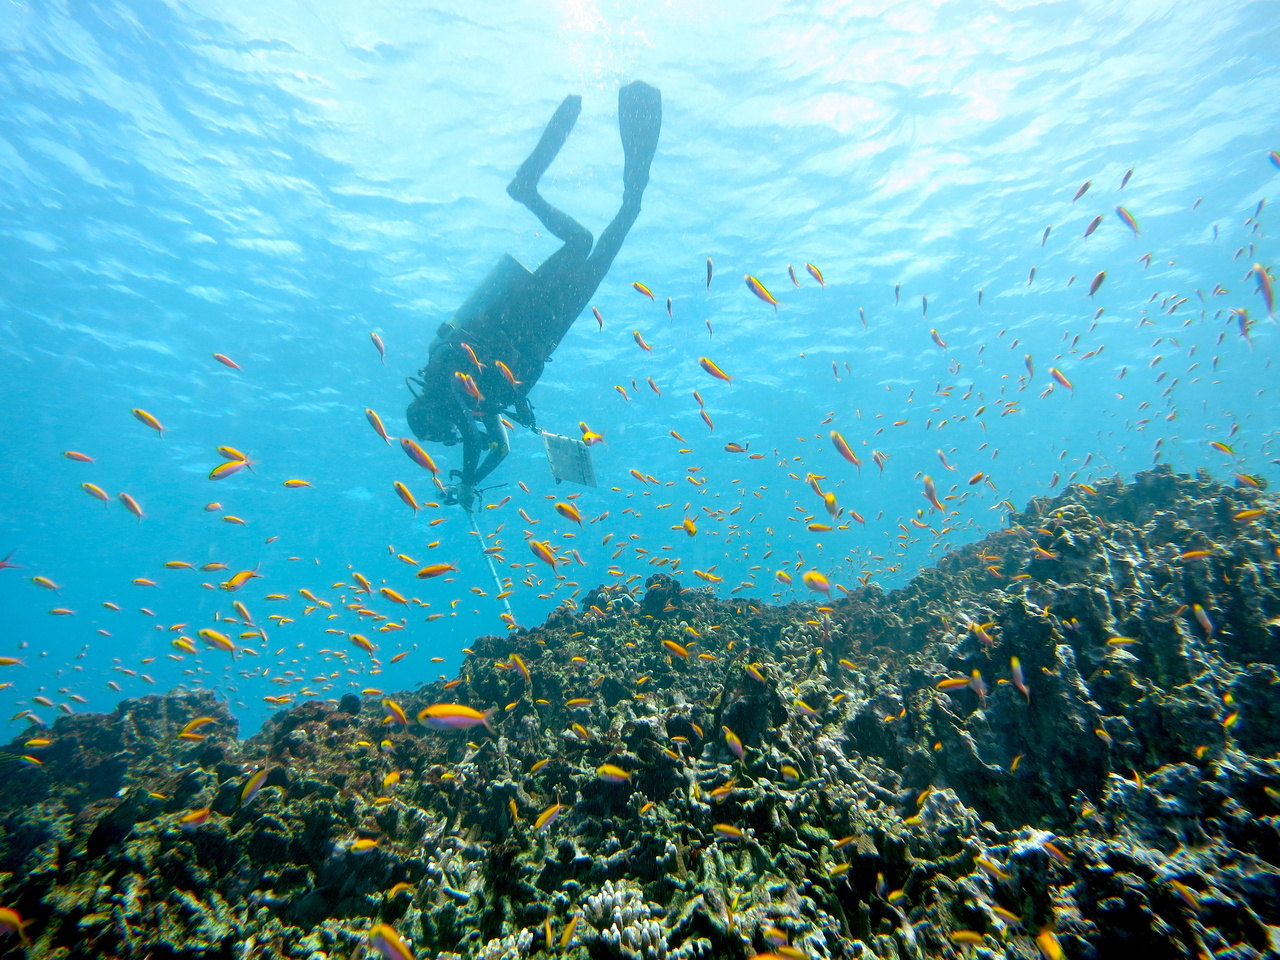 Diver conducts photoquad survey of reef at Jarvis Island.